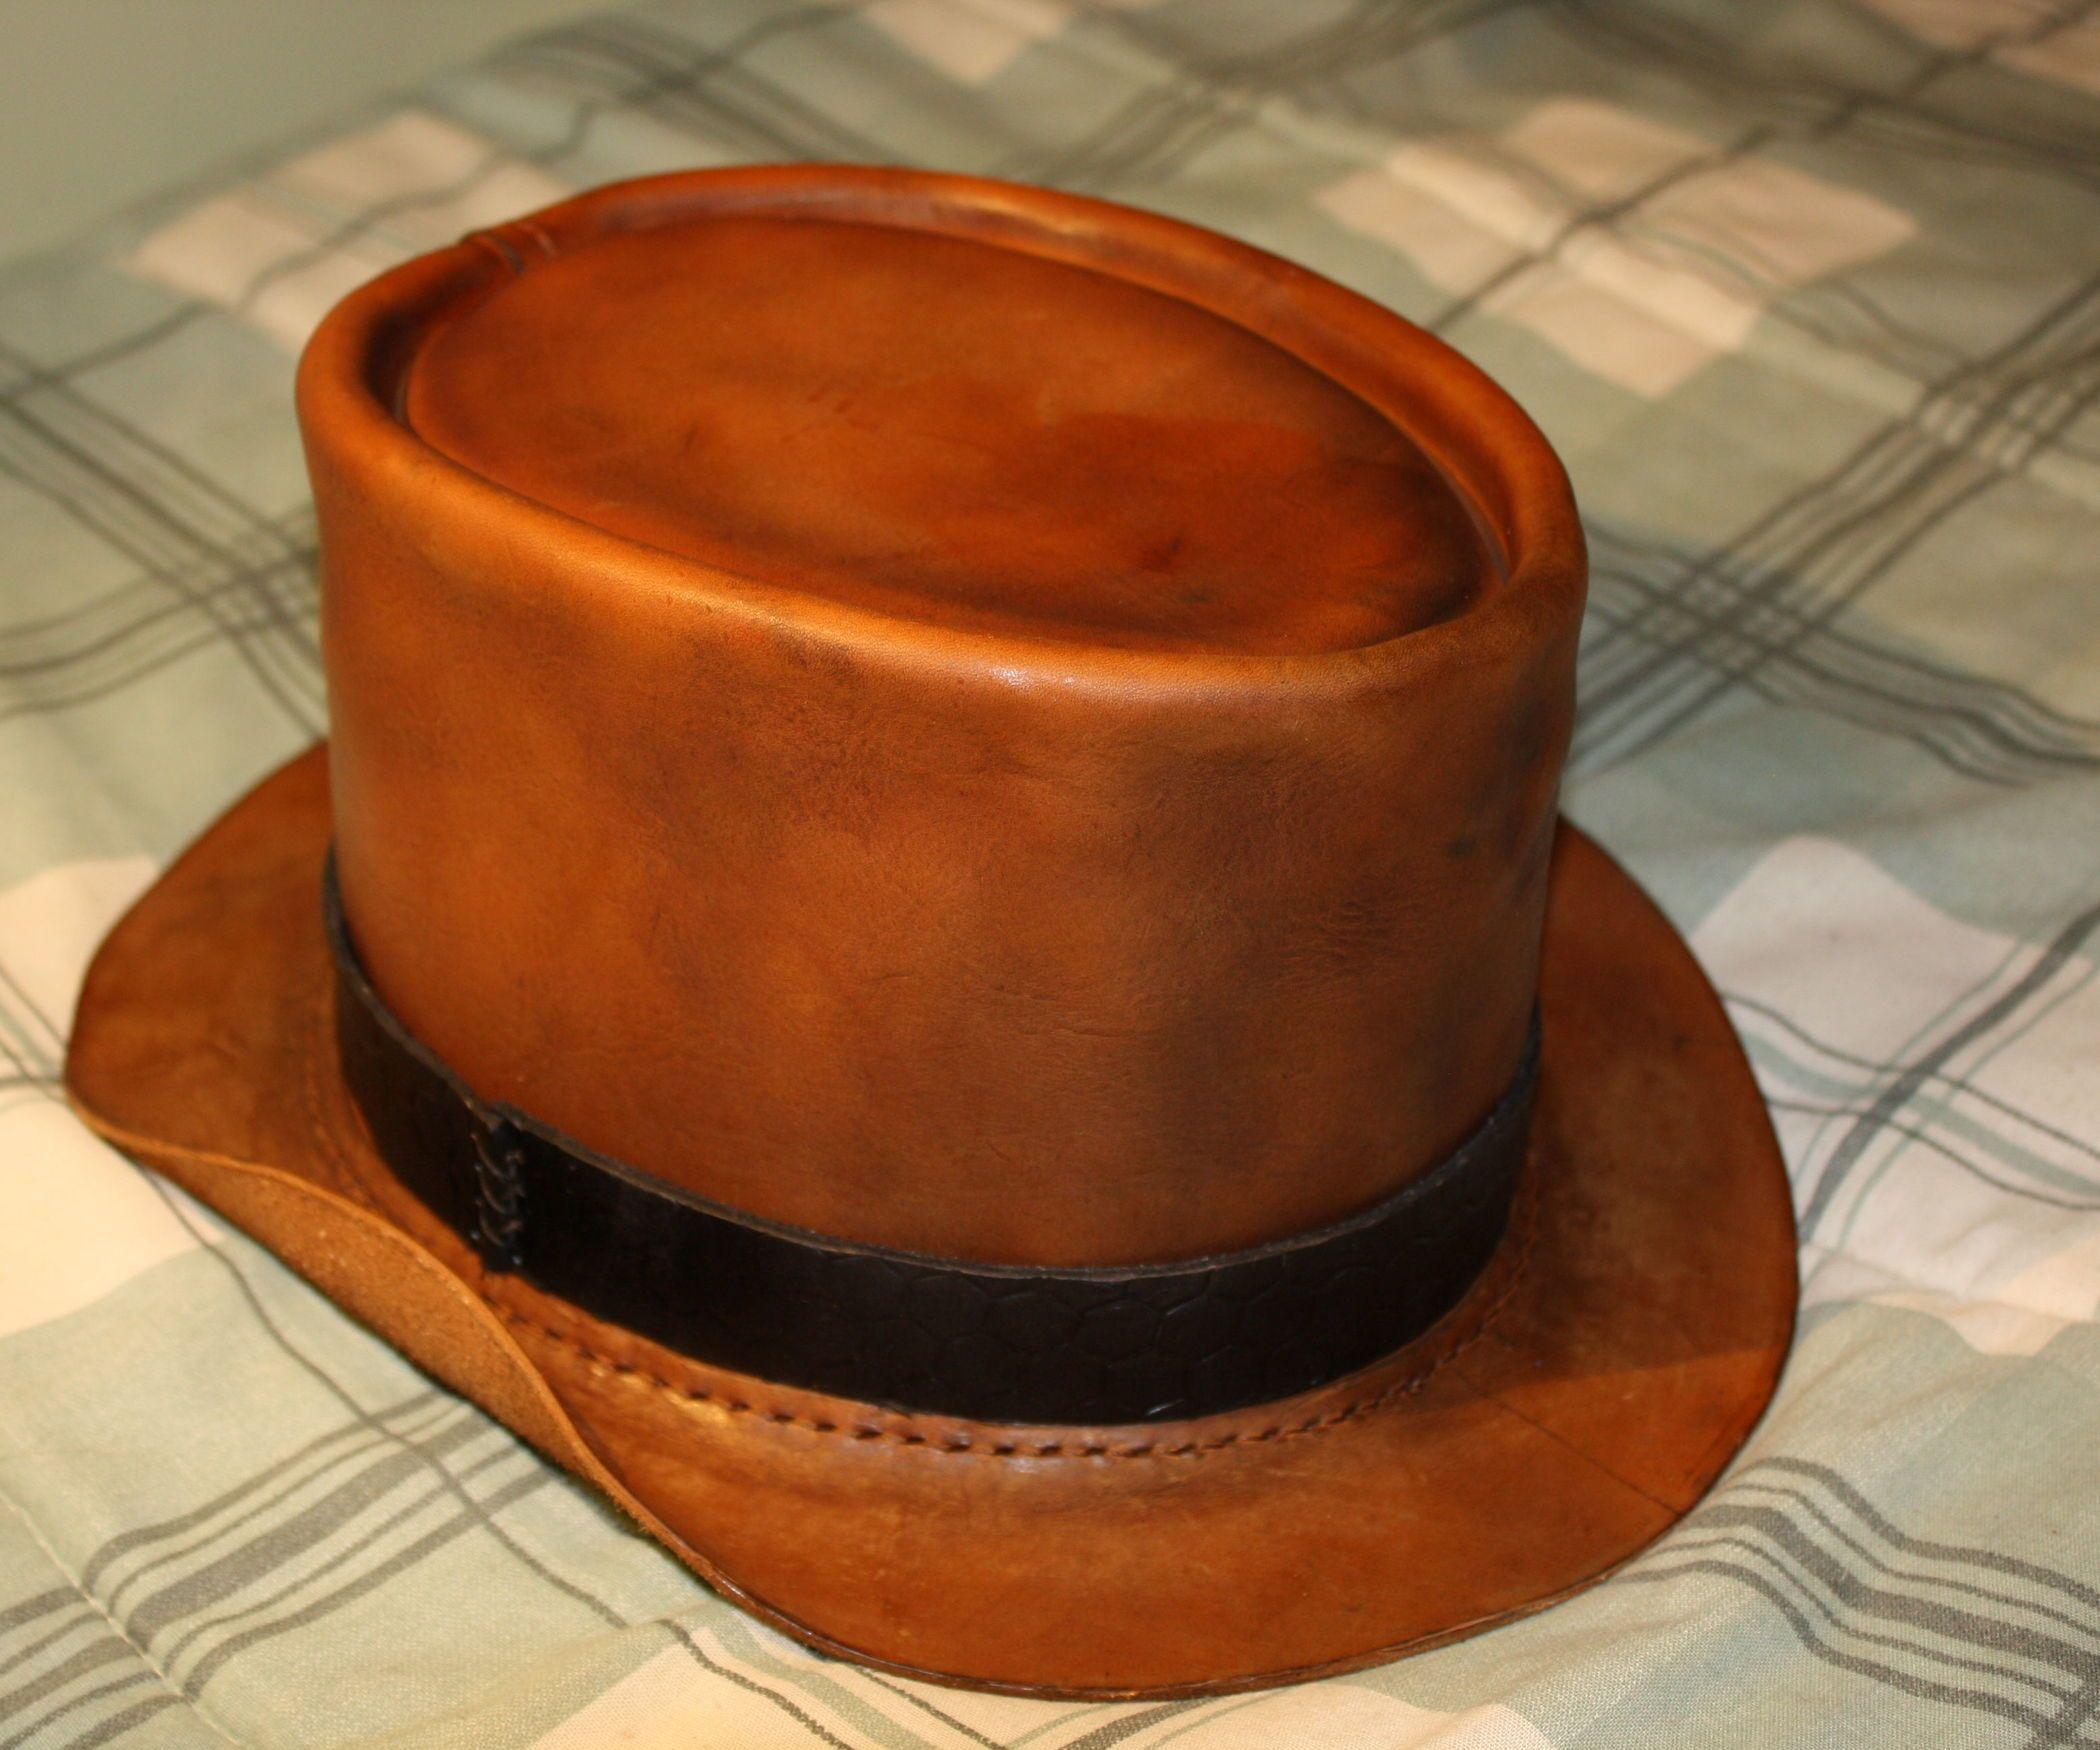 How To Make A Leather Hat Leather Hats Leather Hat Pattern Leather Craft Patterns